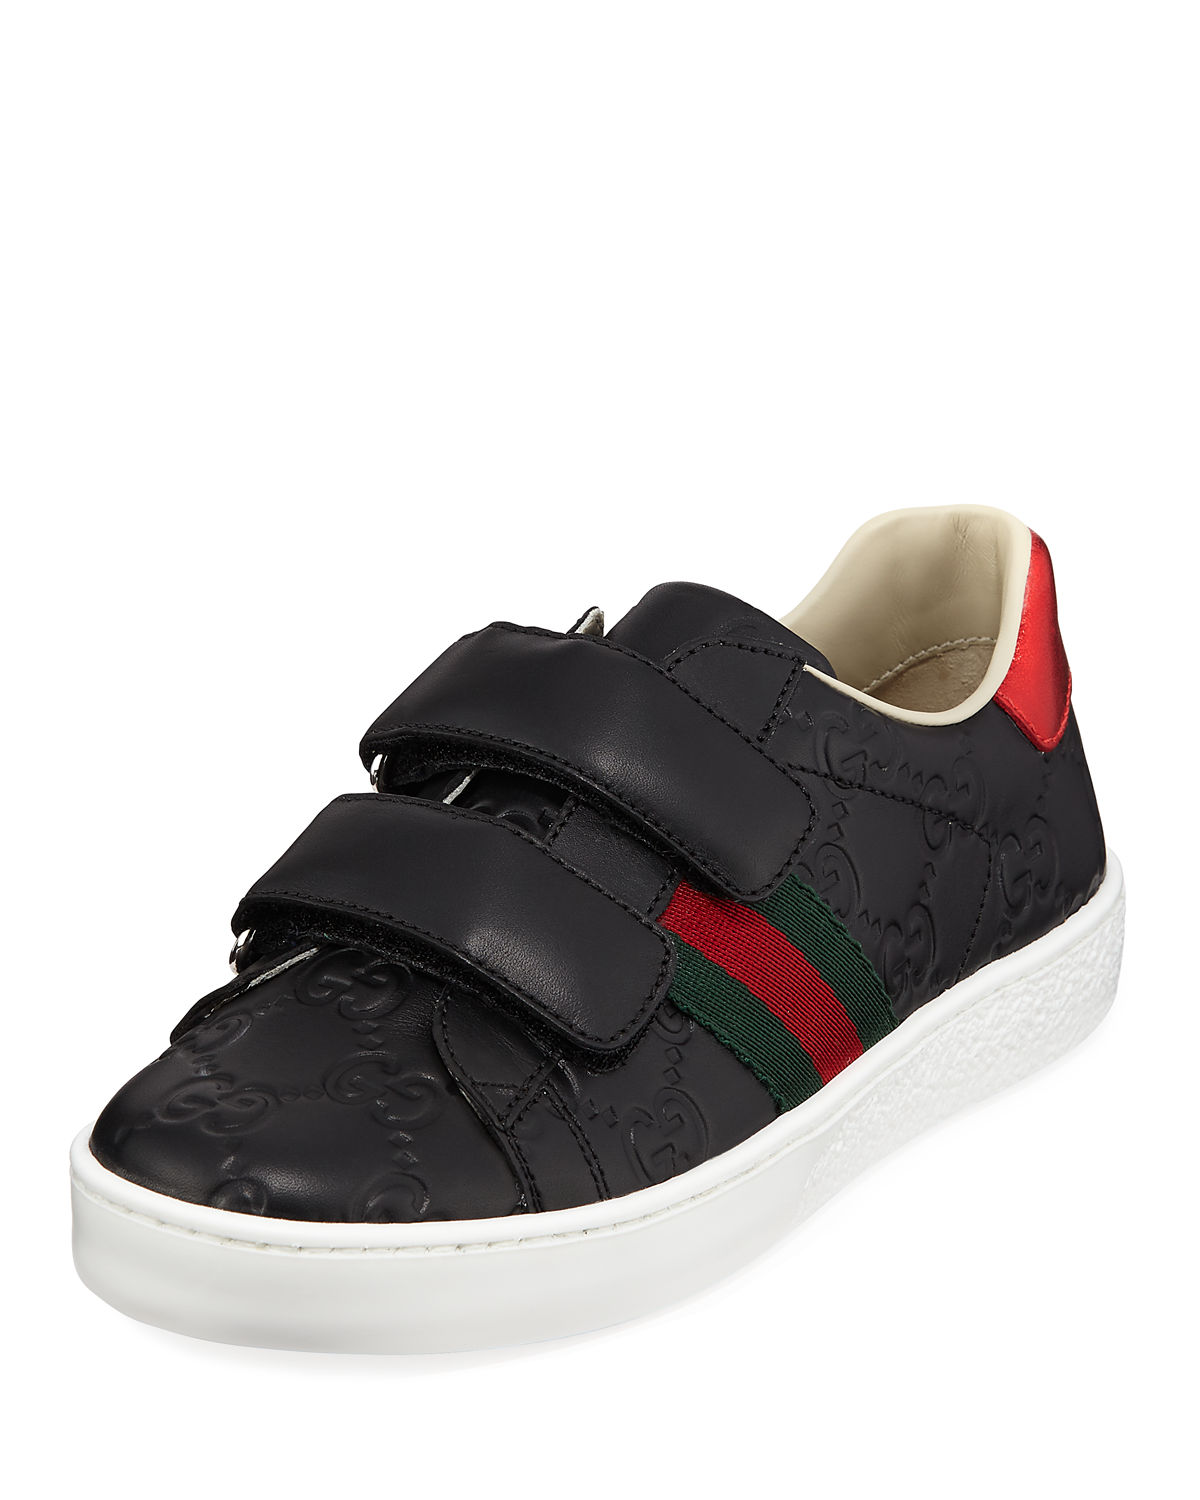 32cbf800d36 Gucci GG Supreme Leather Sneakers